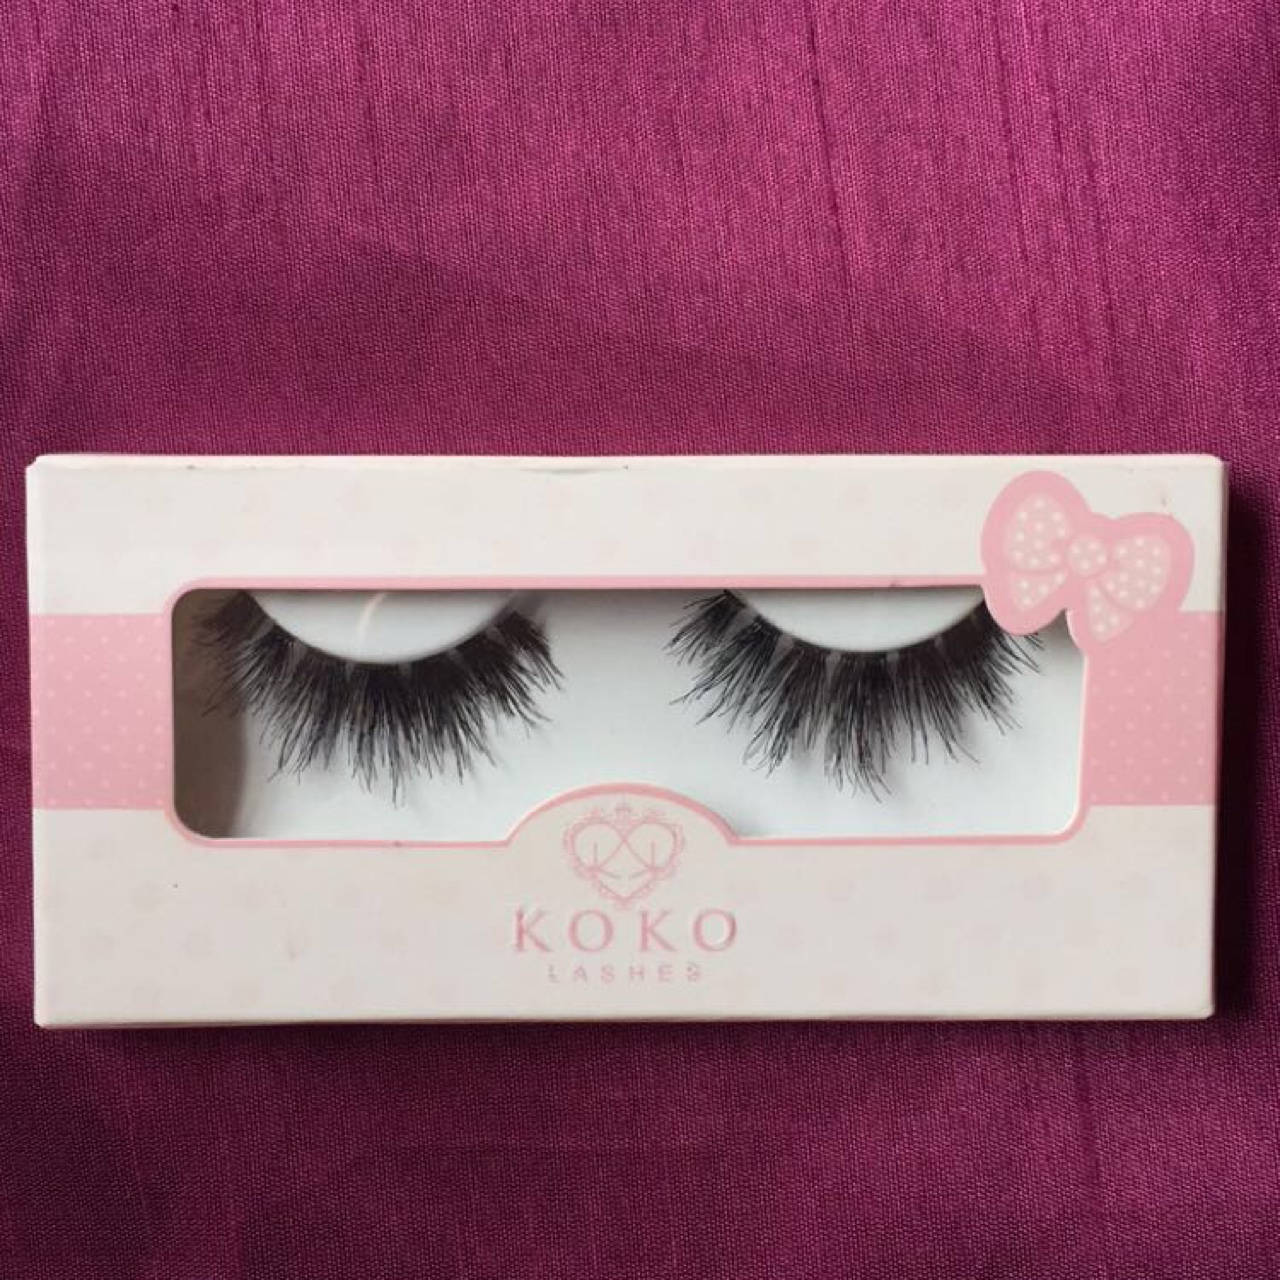 Brand new Koko Lashes in the style Risque  Been in    - Depop